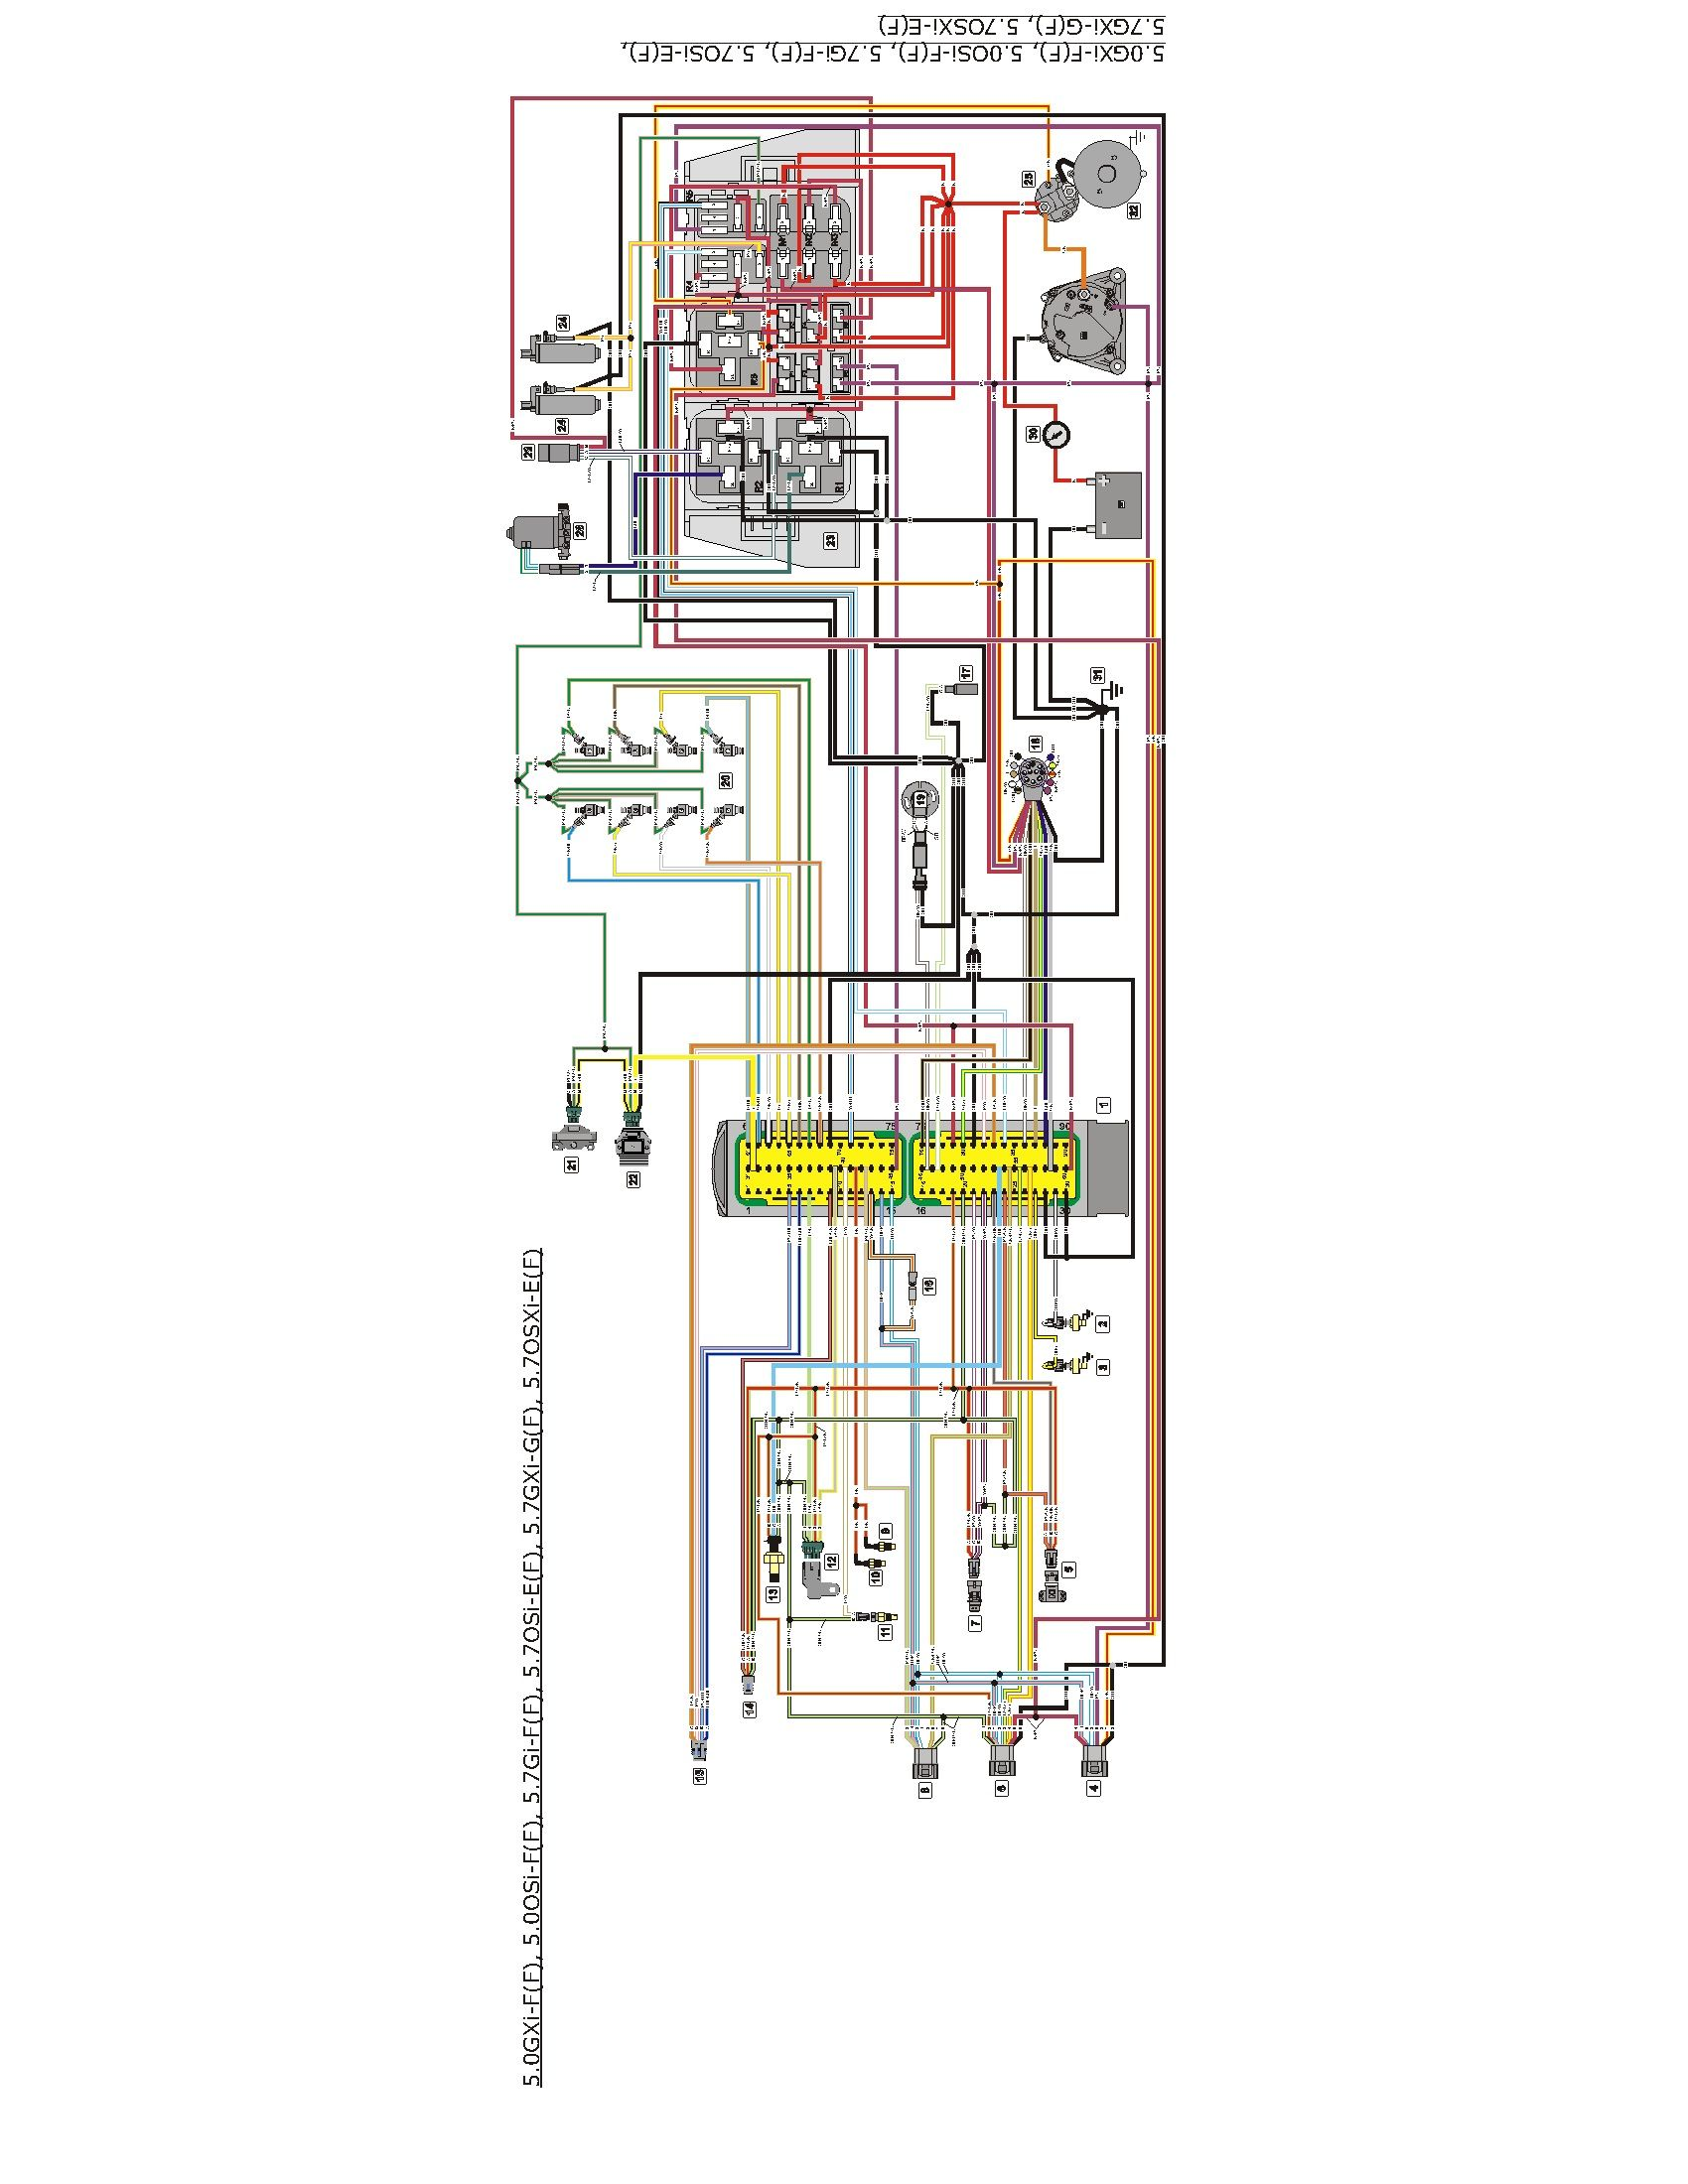 38e0106861e0fe47e508530985b32839 volvo penta 5 7 wiring diagram simple boat wiring diagram \u2022 free volvo penta 5.7 gxi wiring diagram at pacquiaovsvargaslive.co